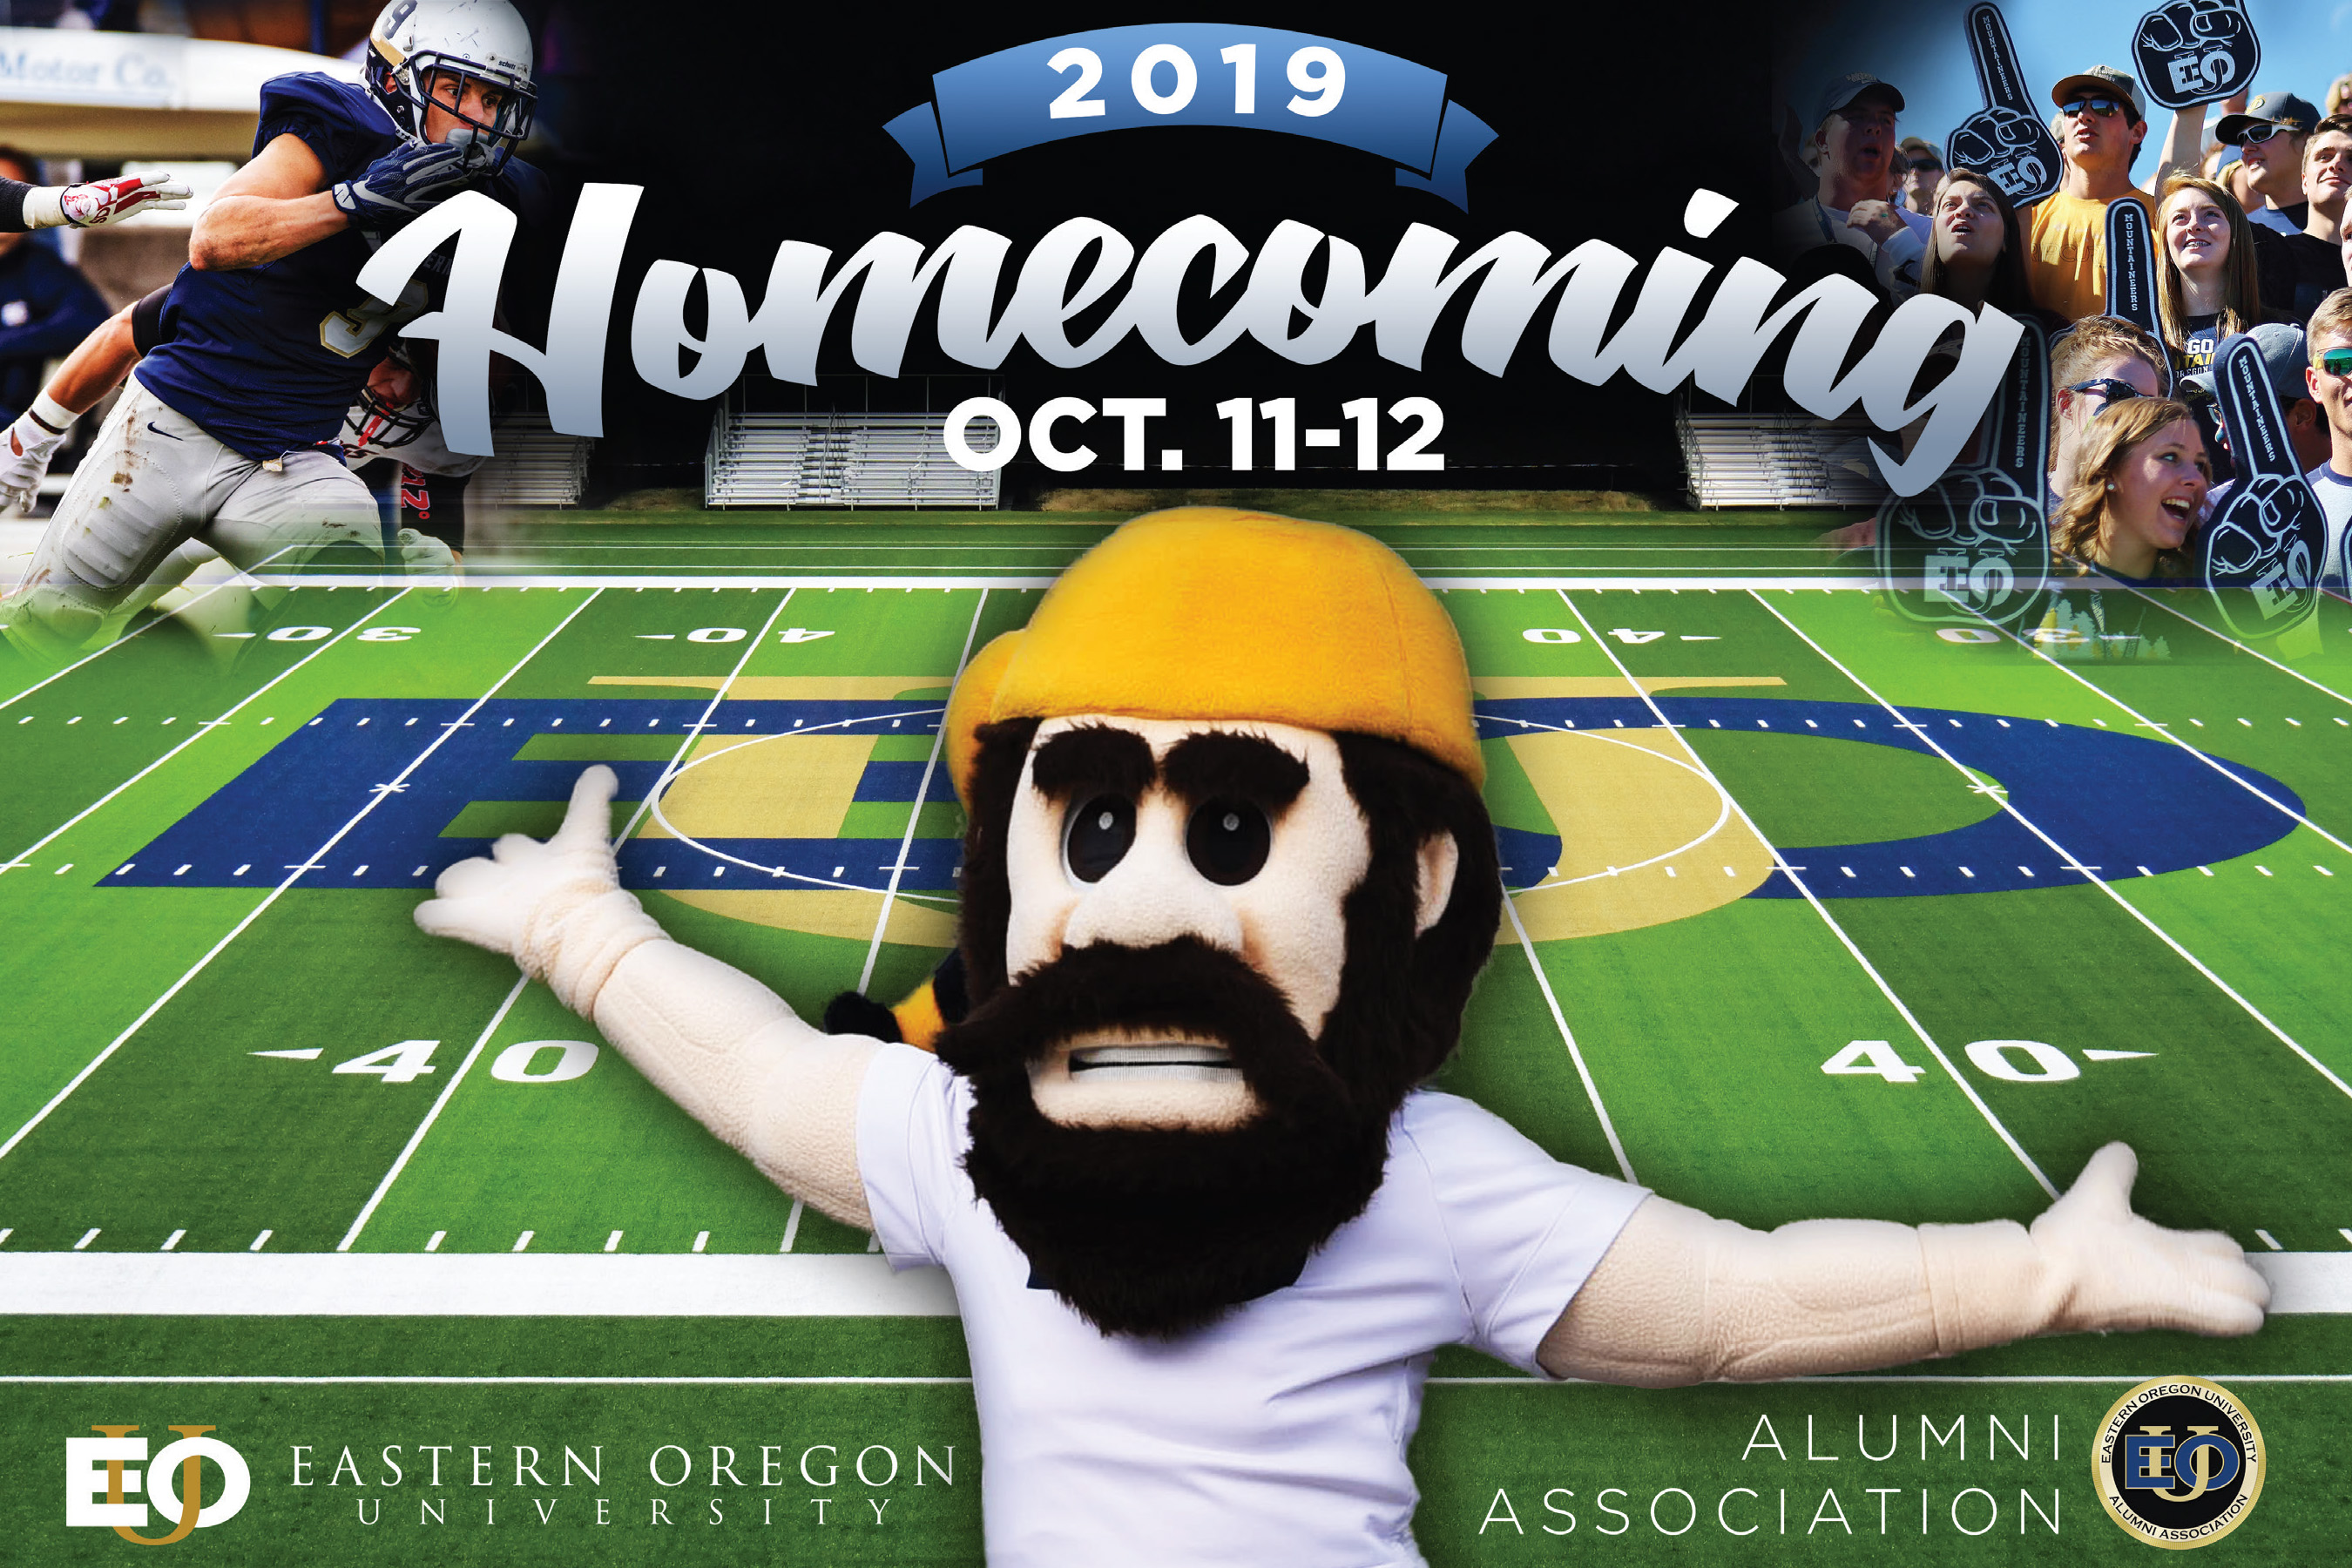 Link to Homecoming information